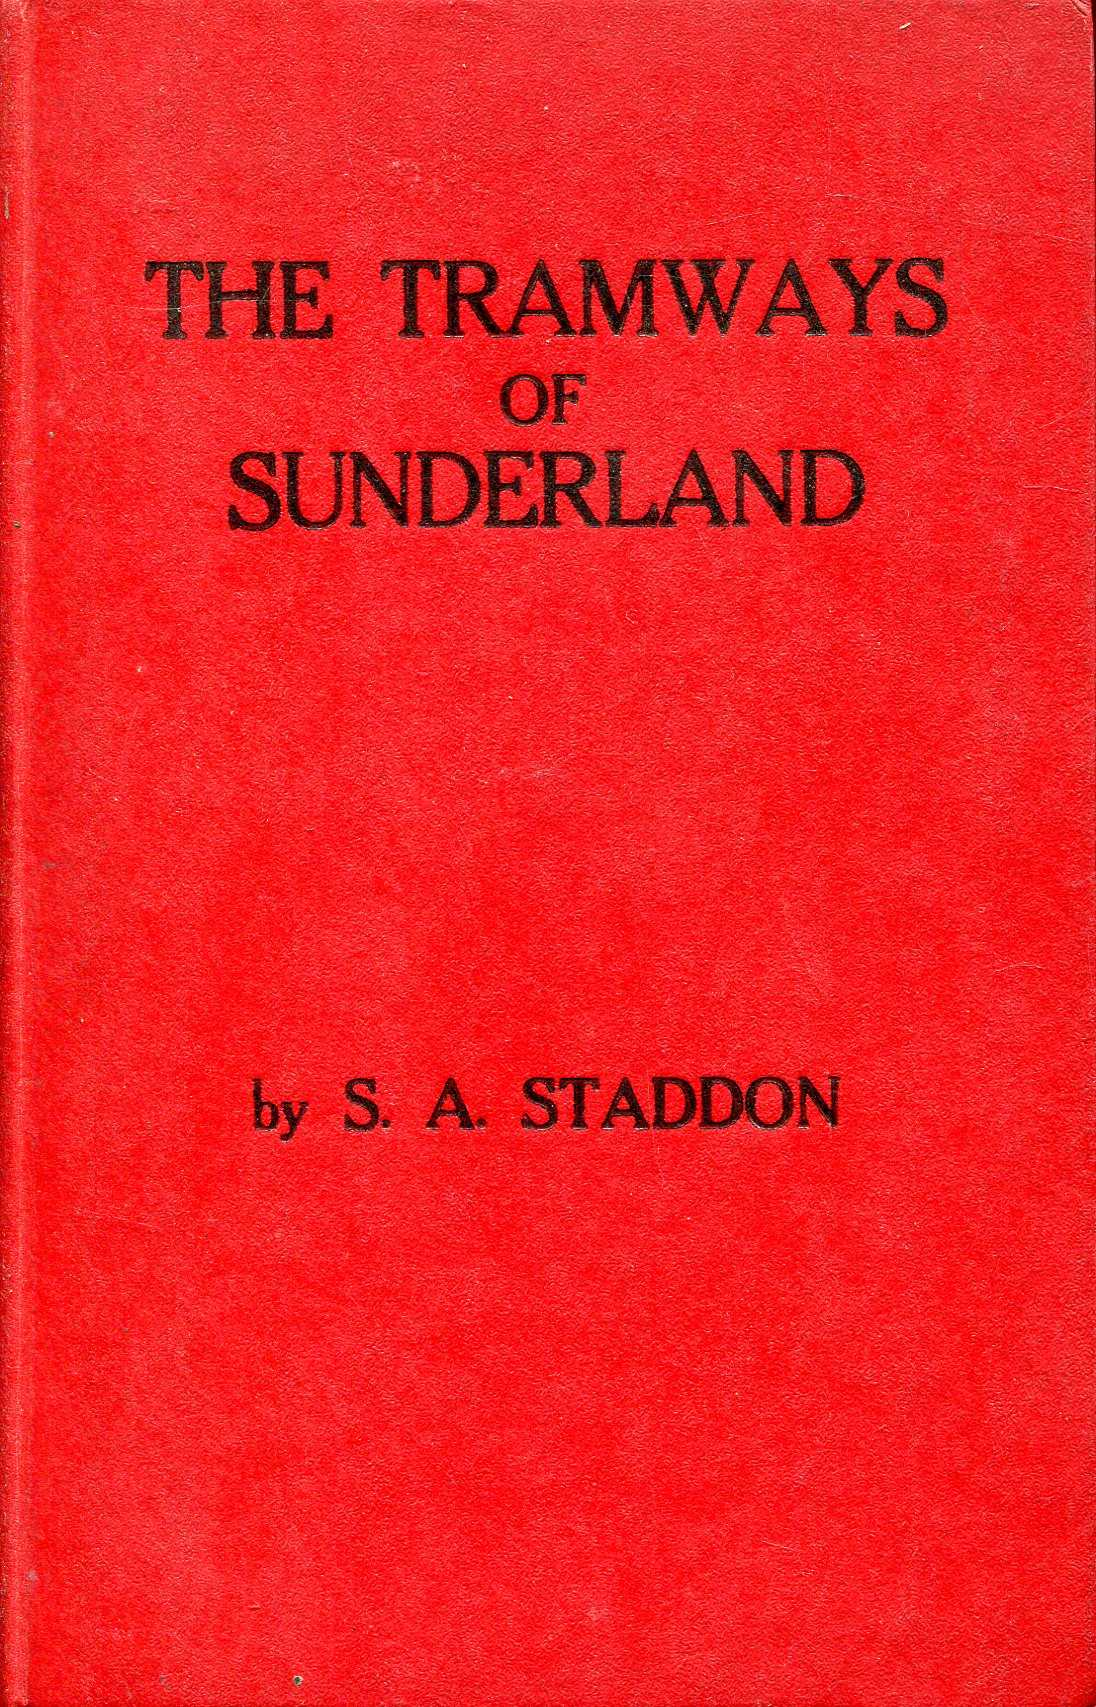 Image for The Tramways of Sunderland